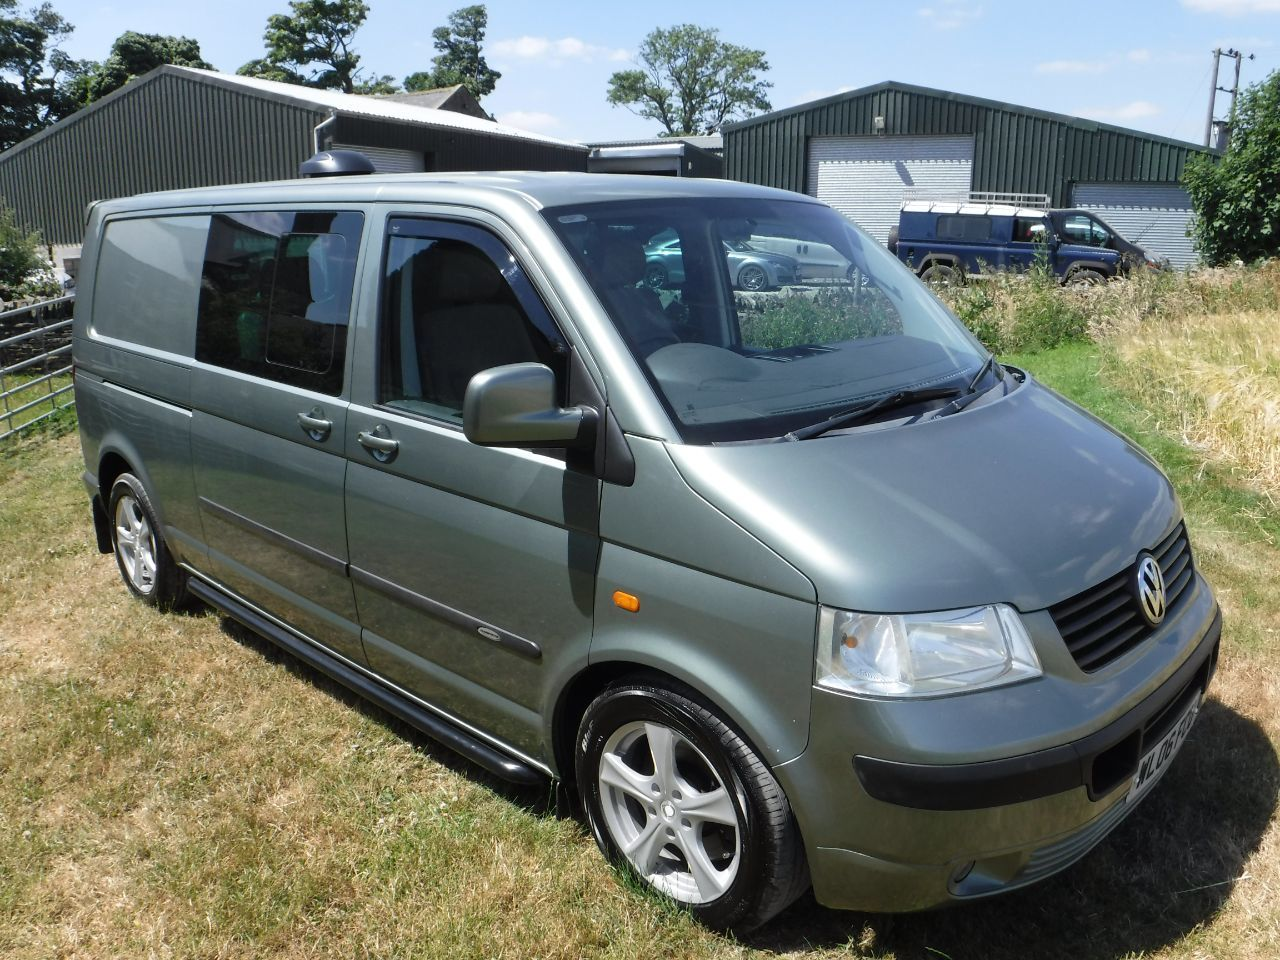 Volkswagen Transporter T5 2.5TDI PD 174PS T32 KOMBI Window Van MPV Diesel RARE METALLIC FRESCO GREEN